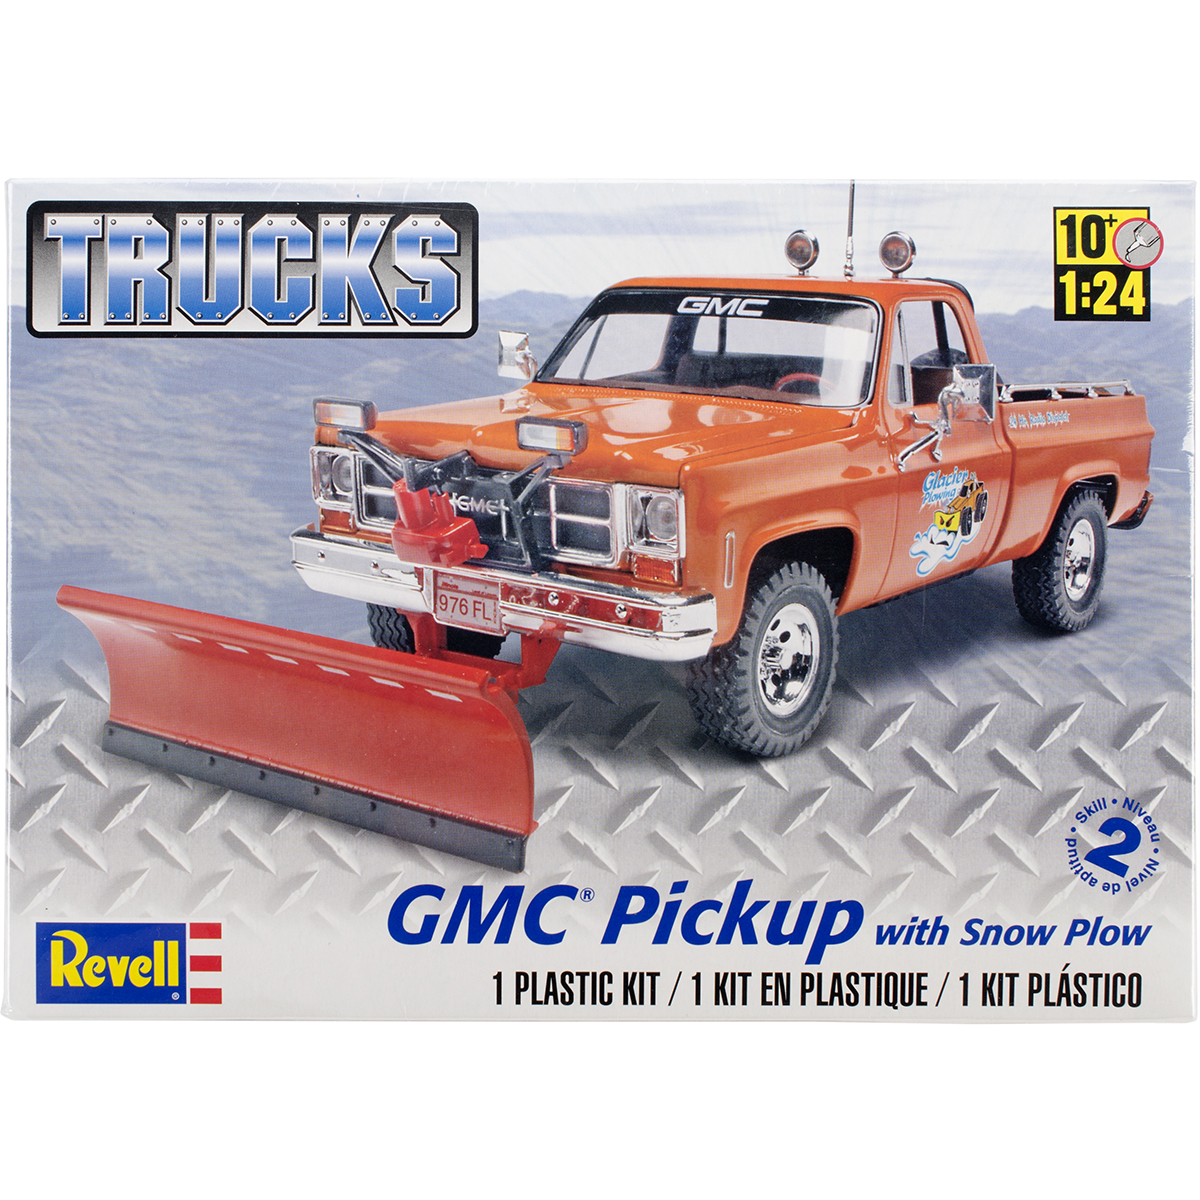 Plastic Model Kit GMC Pickup W/Snow Plow 1:24